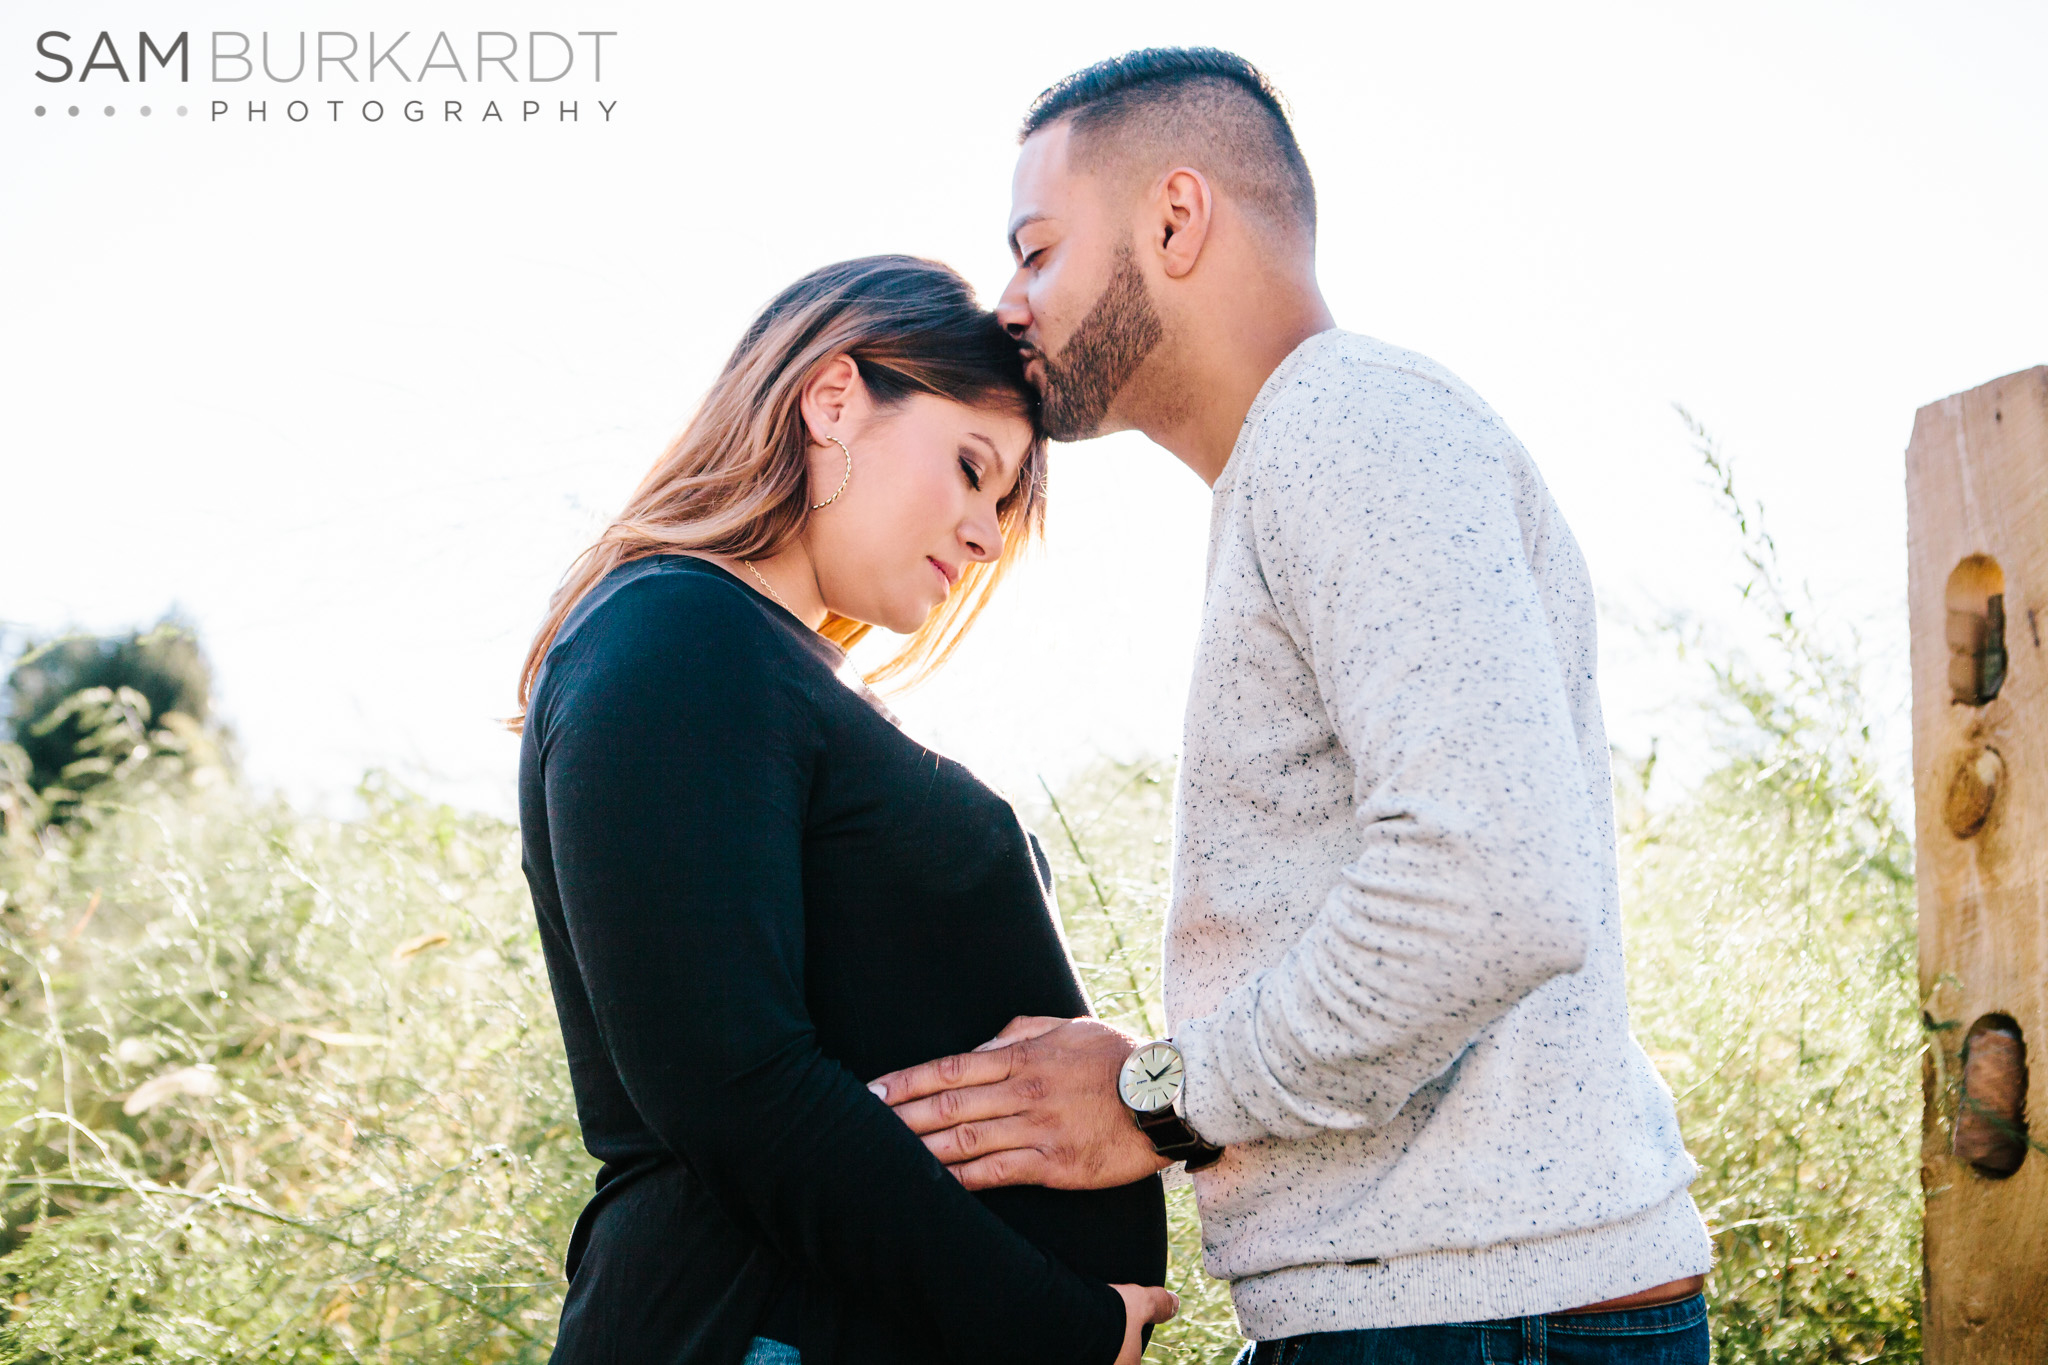 sburkardt_maternity_connecticut_fall_orchard_photography_006.jpg